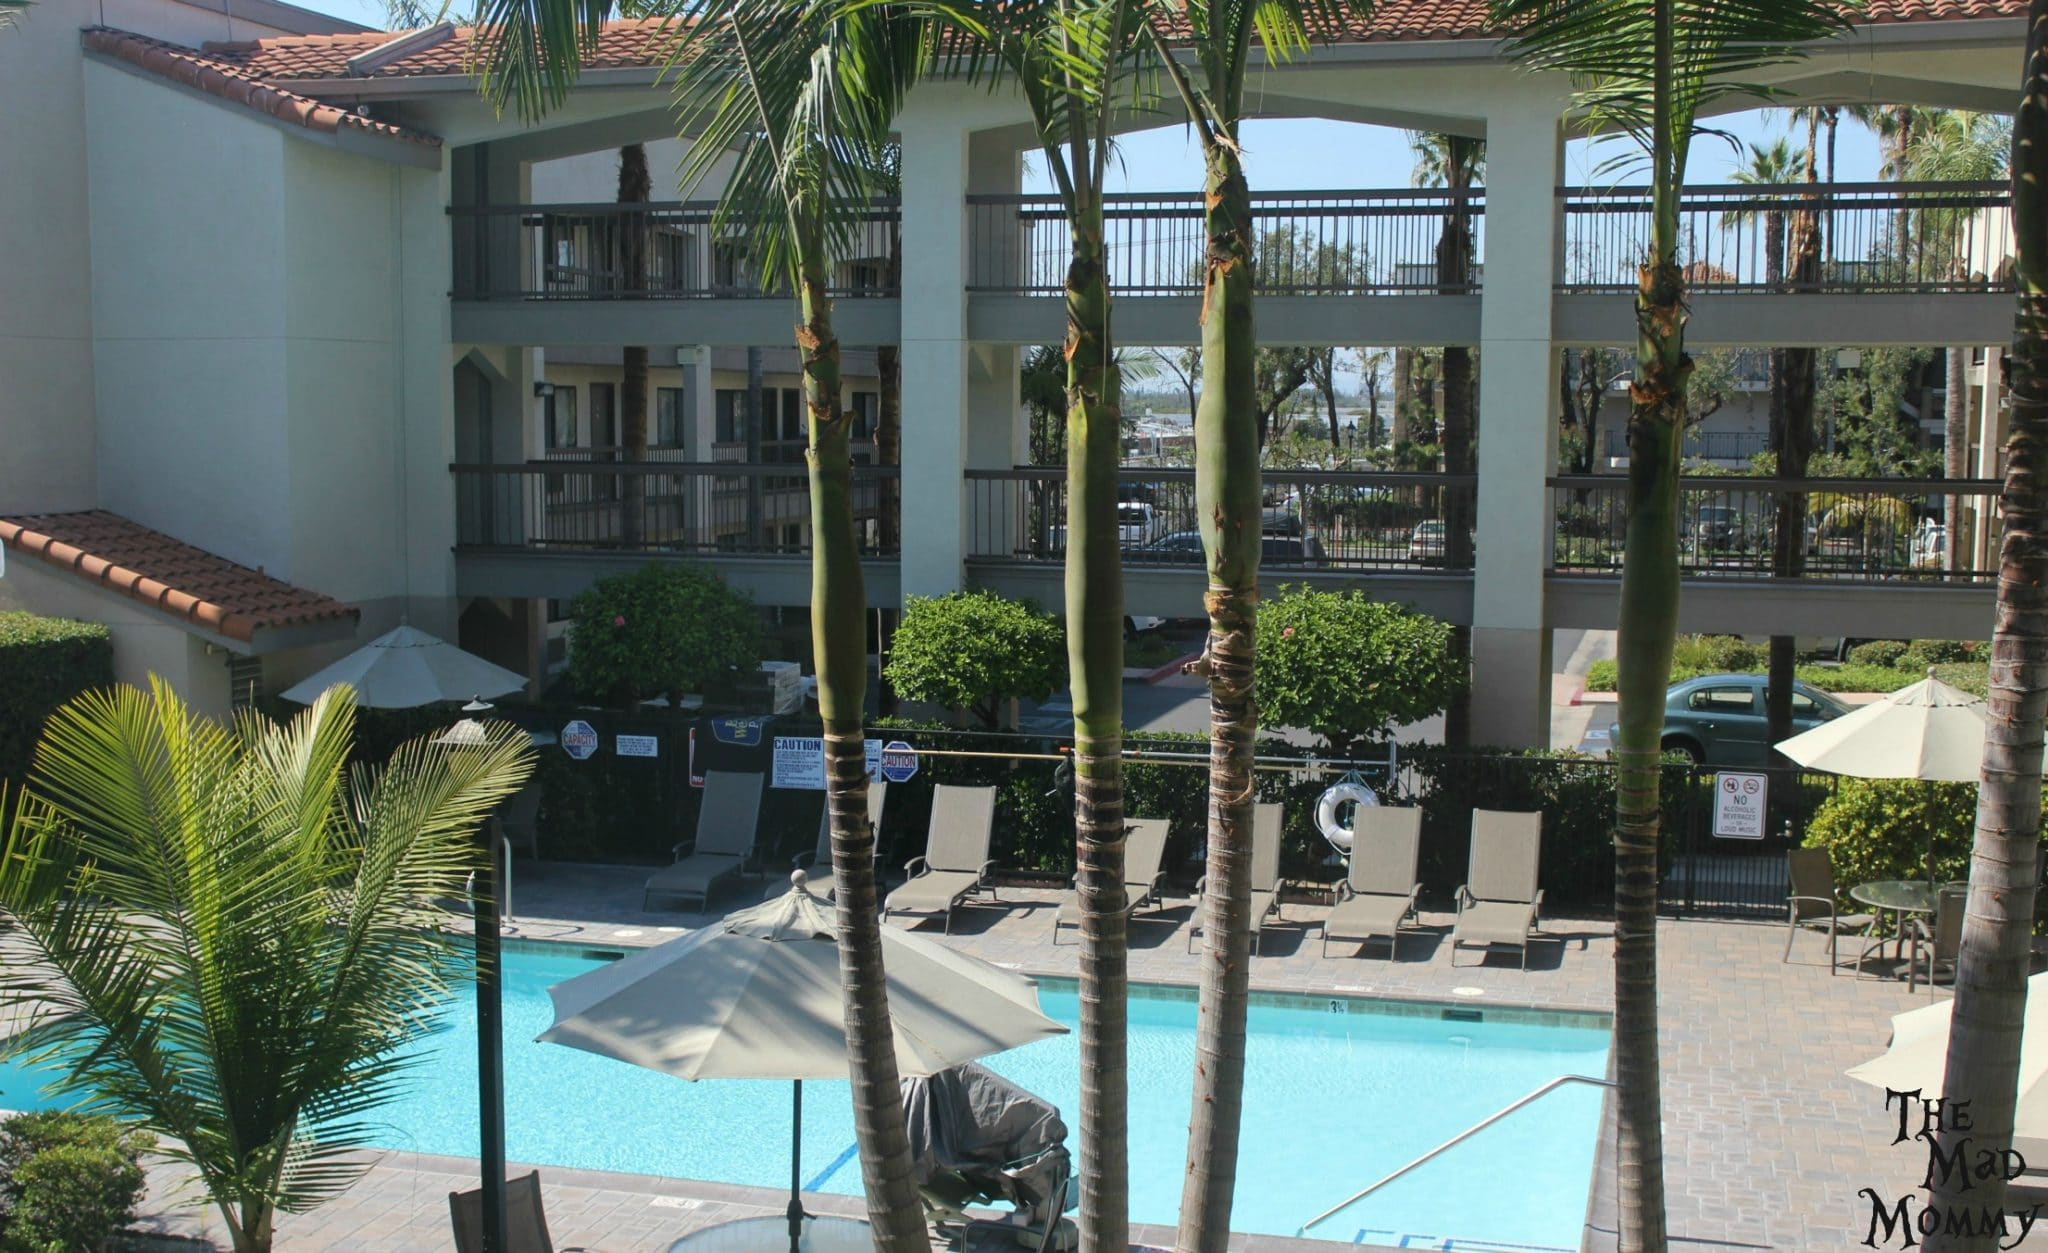 The view from our room at the Best Western Plus Orange County.